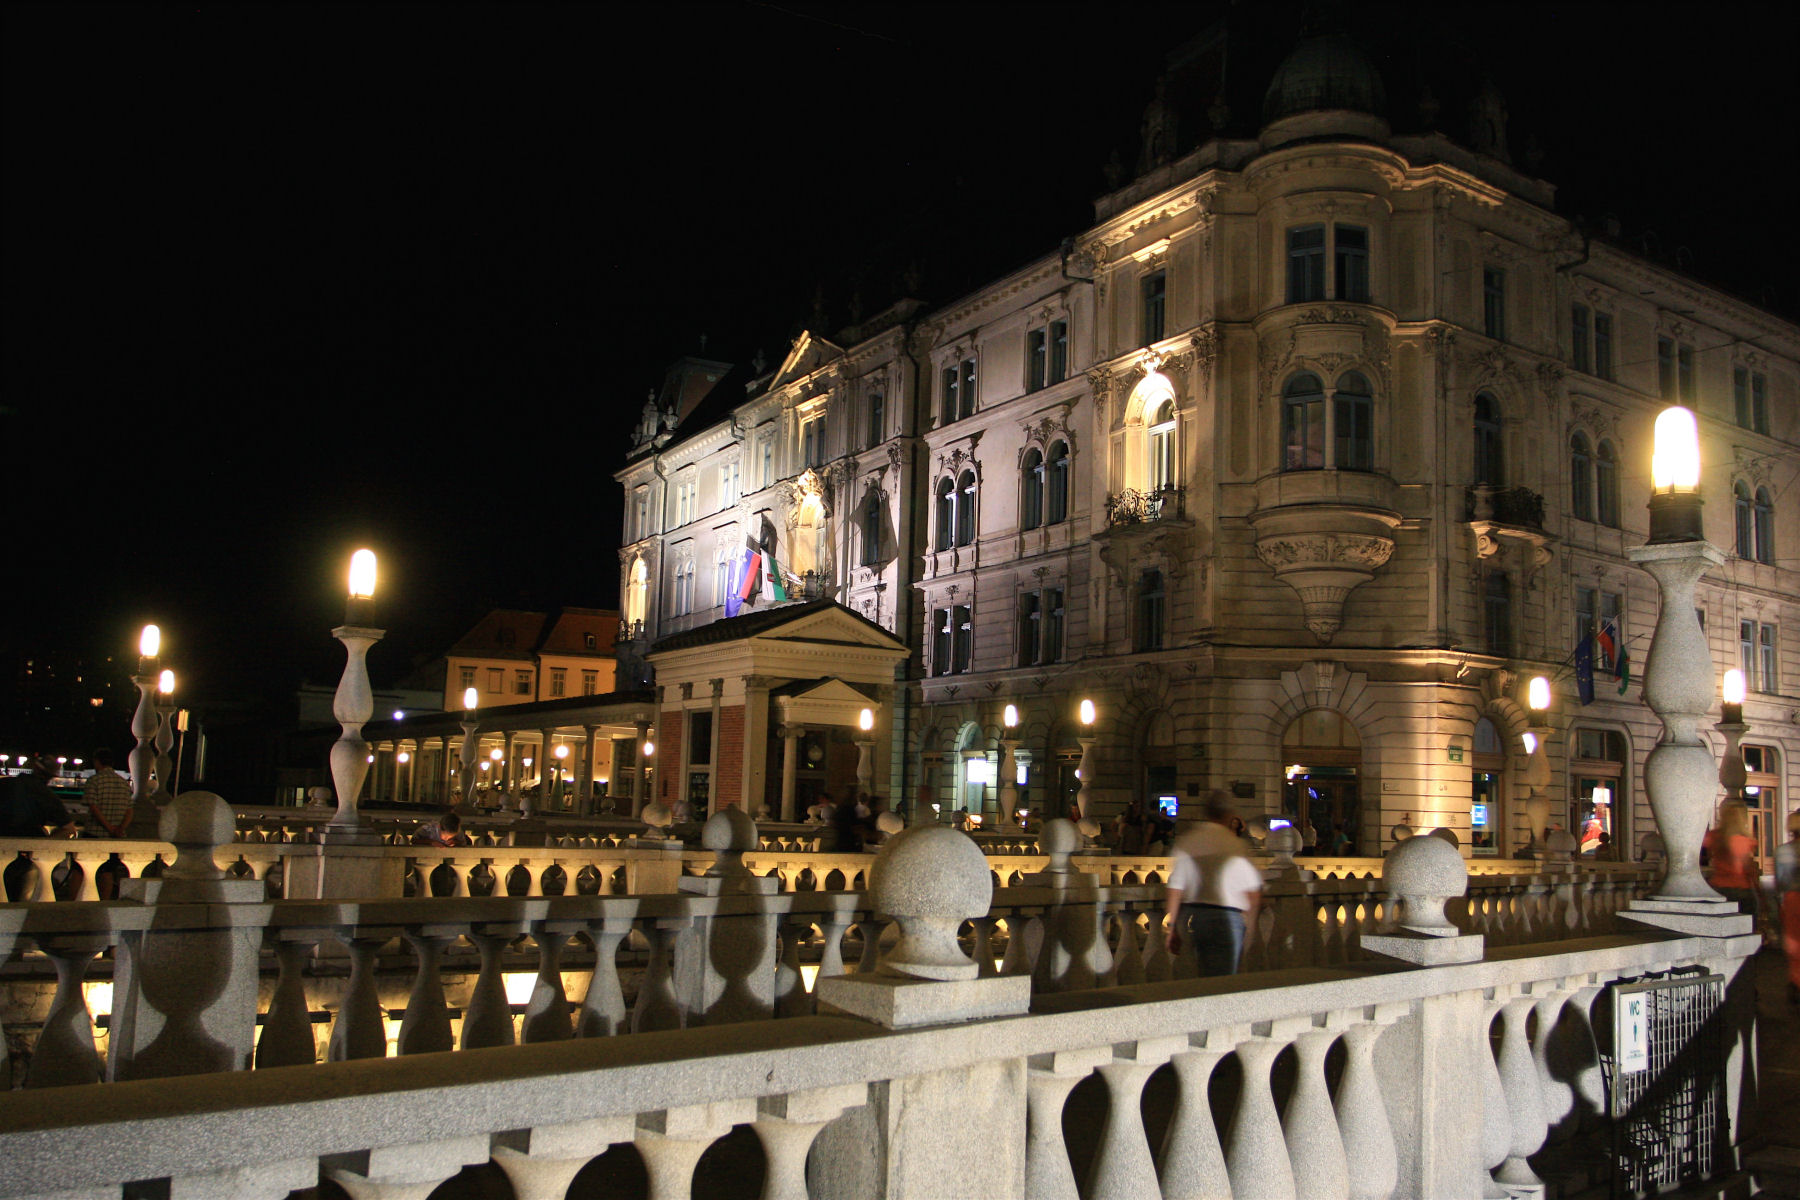 Ljubljana with its triple bridge is a charming city especially when lit up at night